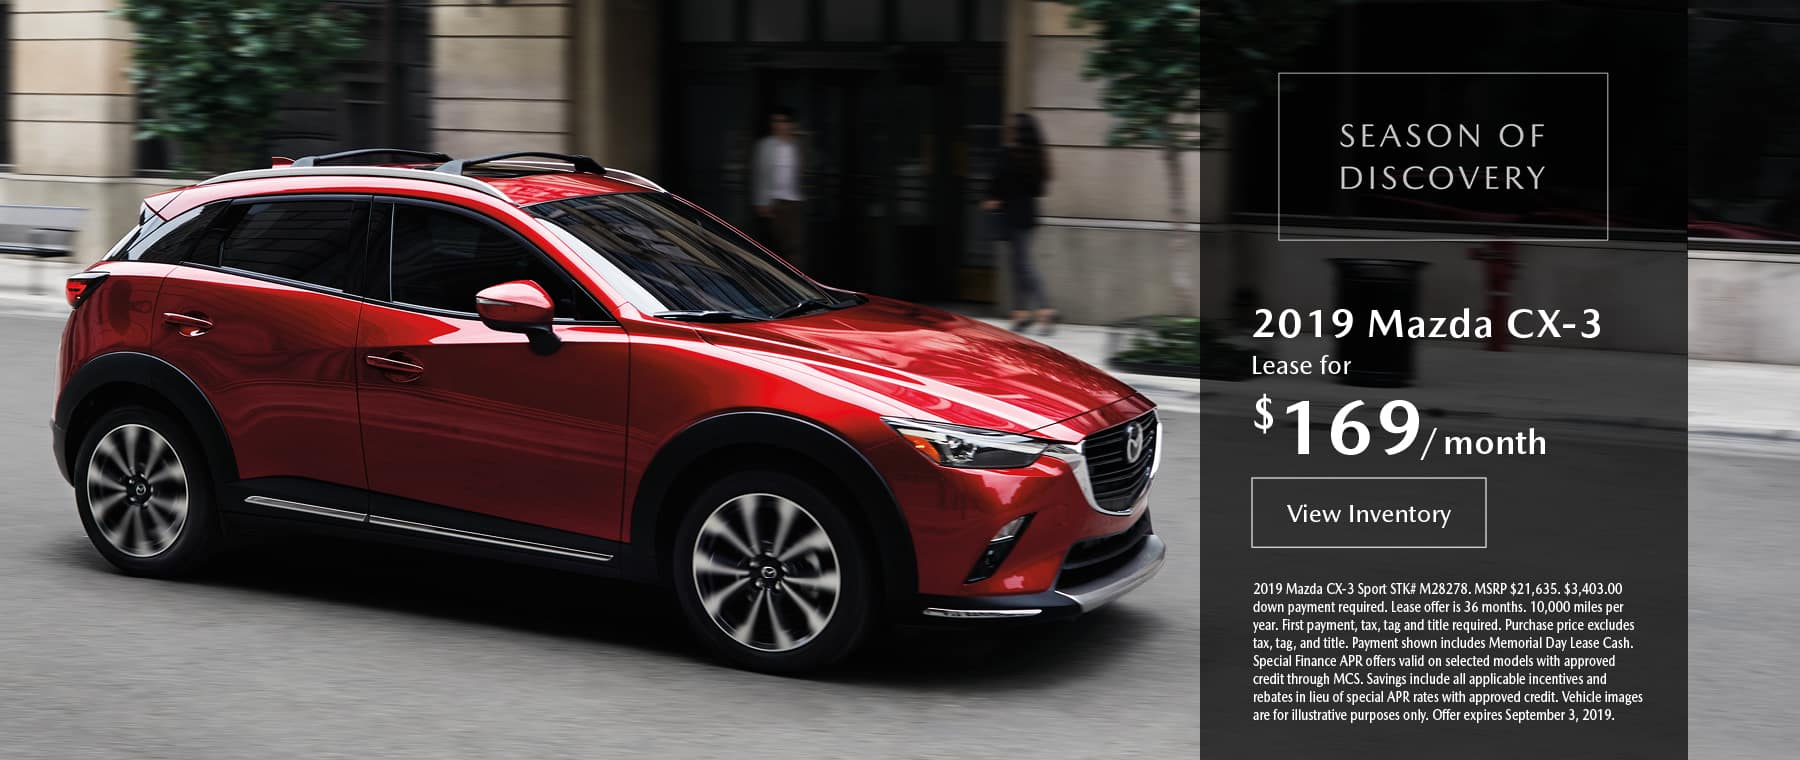 Lease the 2019 Mazda CX-3 for $169 per month, plus tax.